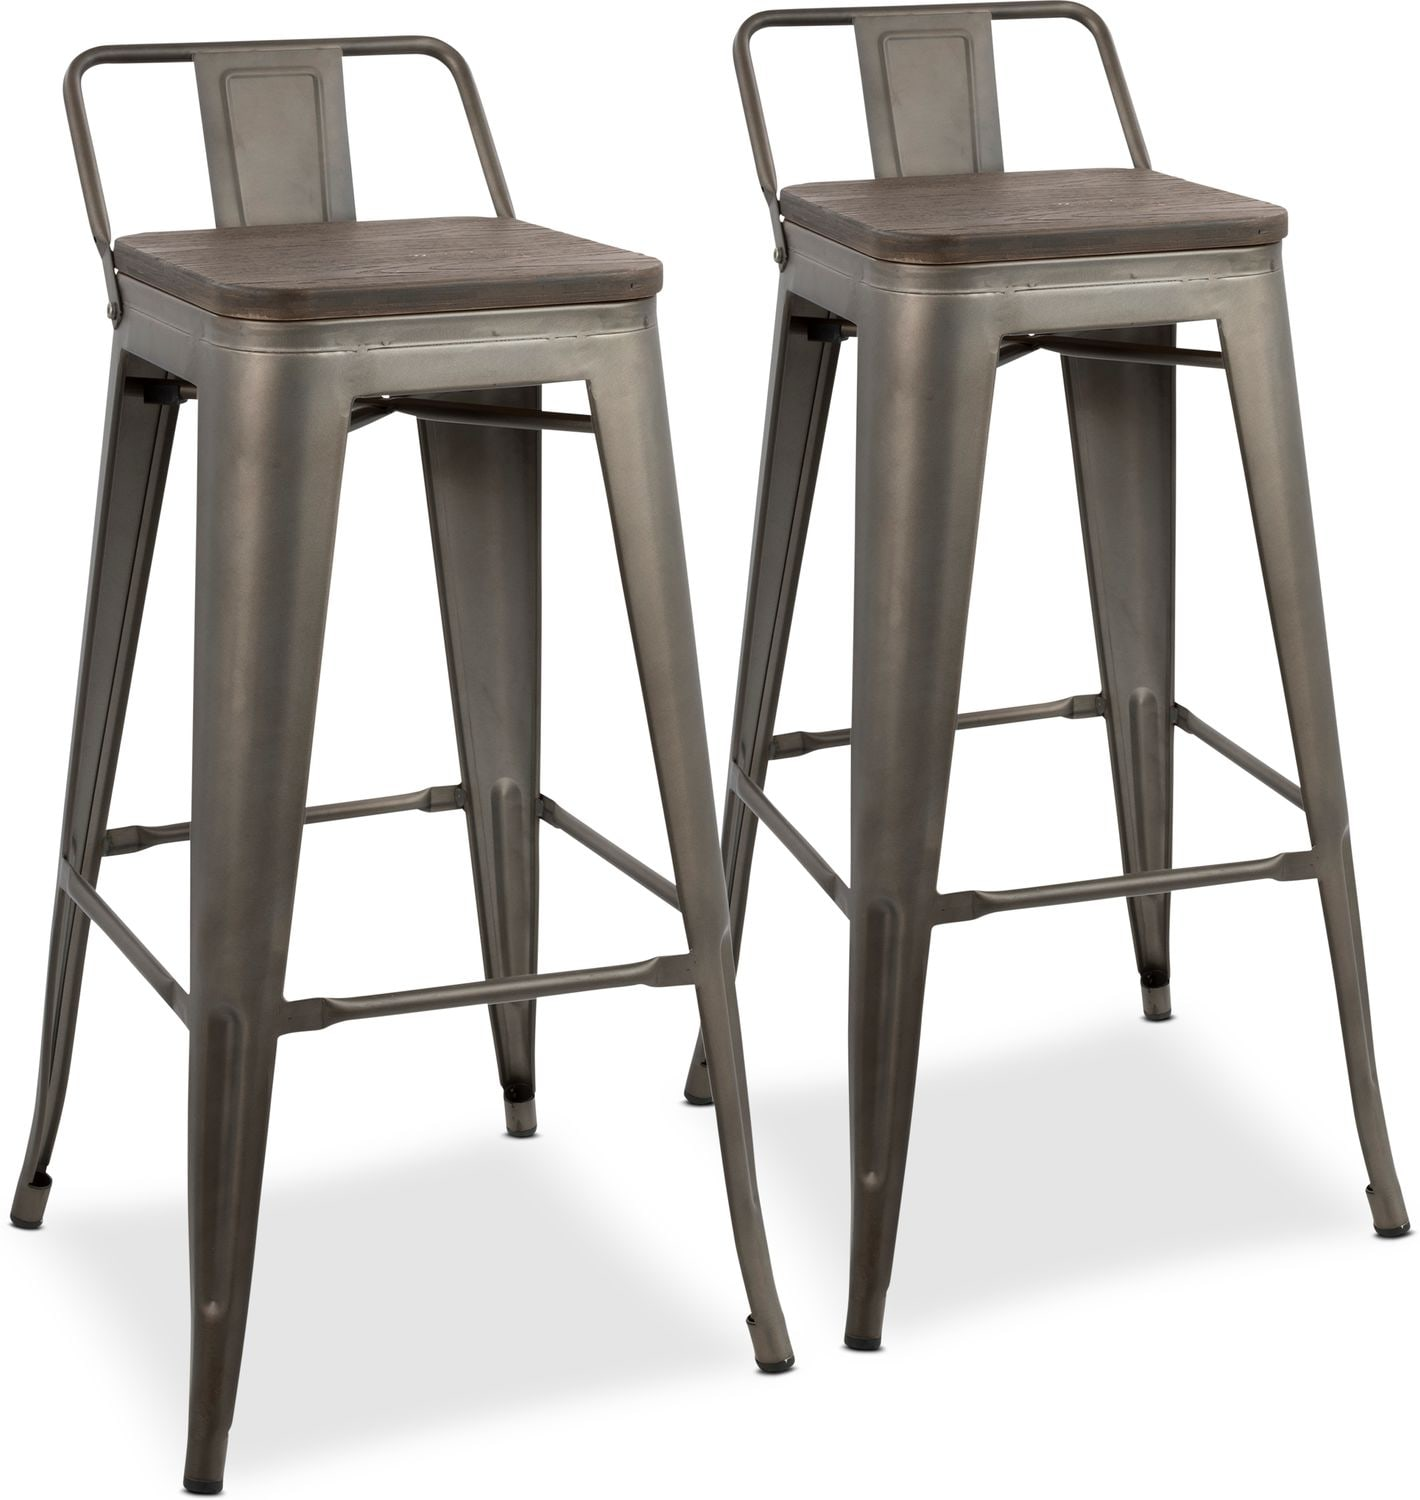 Dining Room Furniture - Dax Set of 2 Low Back Bar Stools